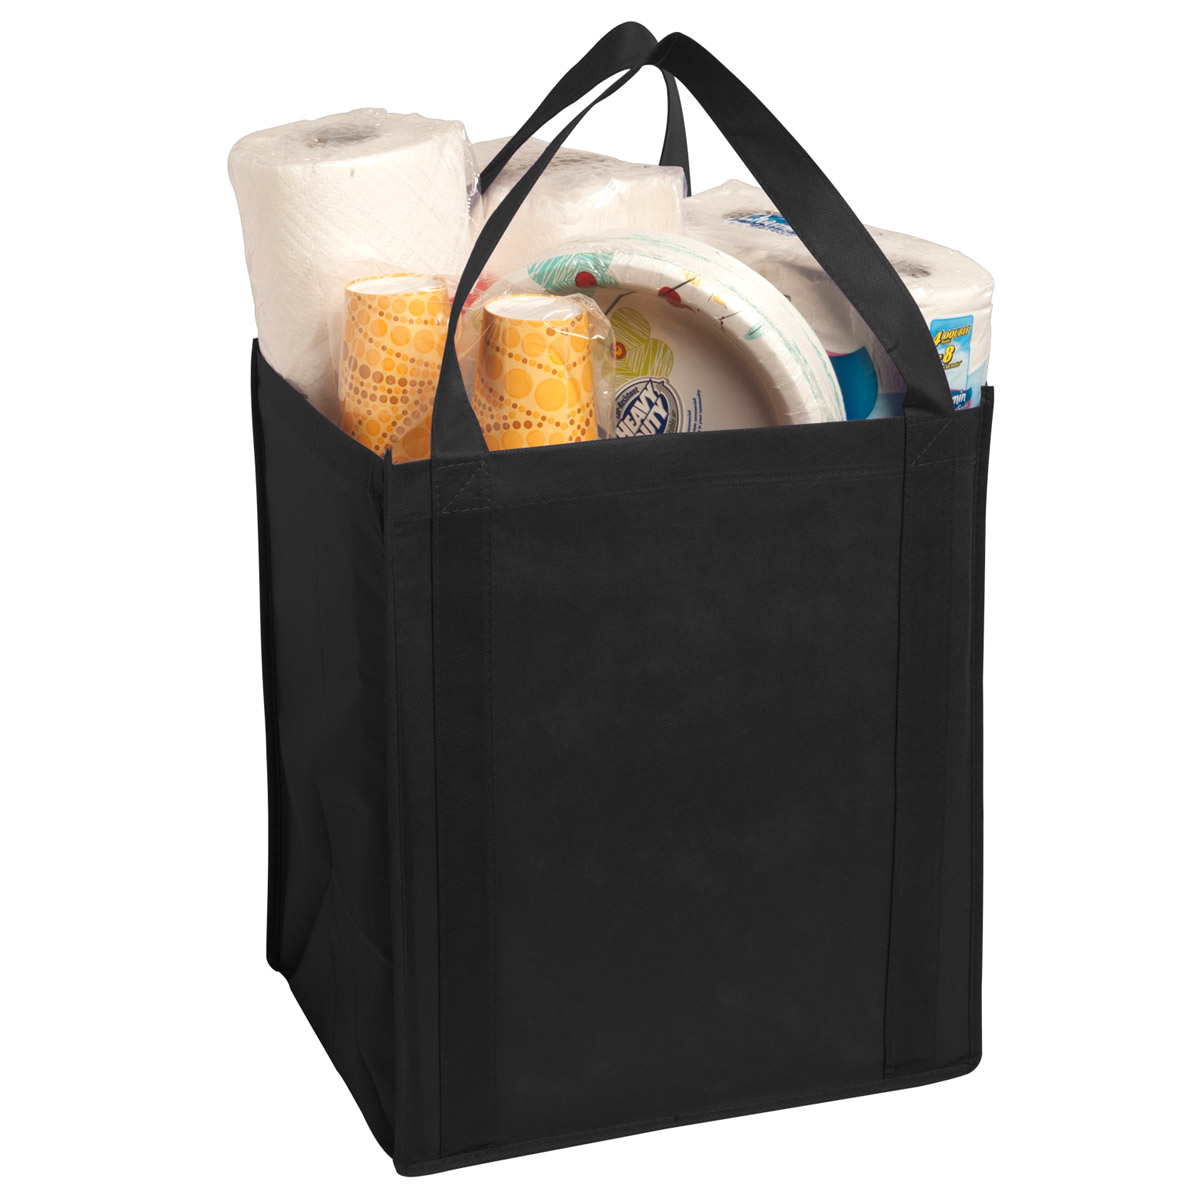 Black Large Non-Woven Grocery Tote